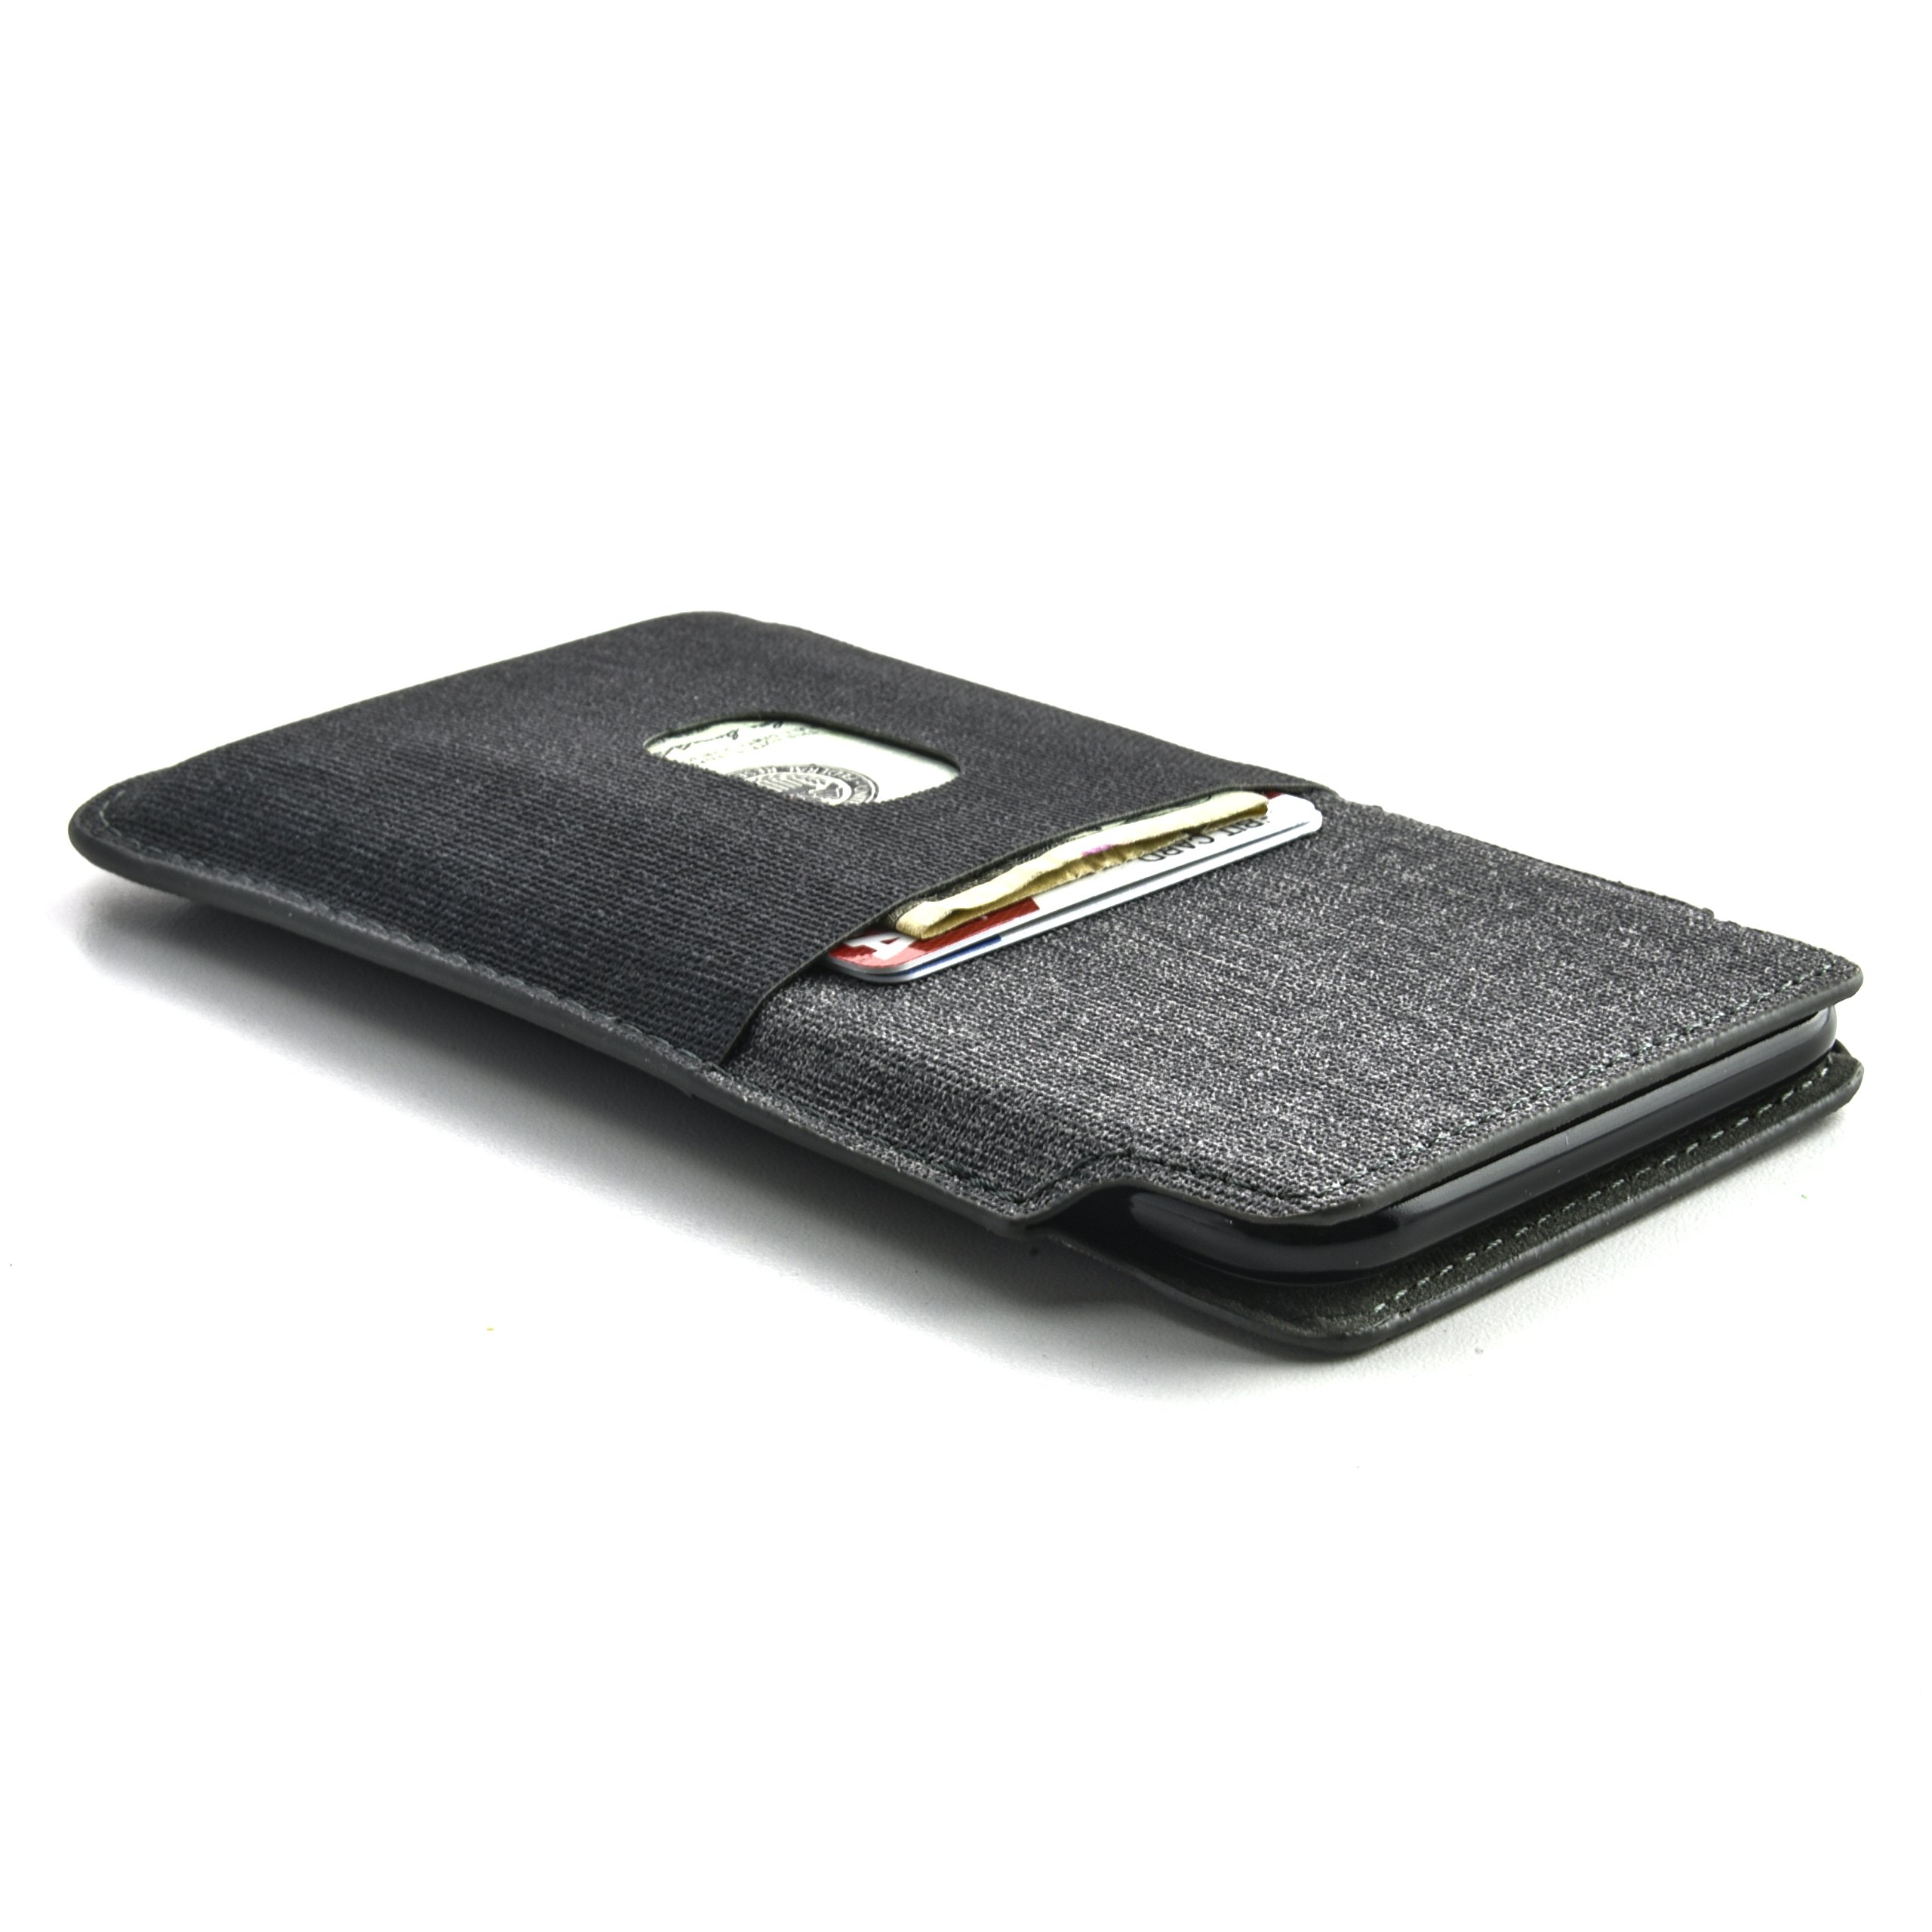 Dockem Luxe Wallet Sleeve for iPhone X; Synthetic Leather Card Case in Twill Canvas Style; Ultra Slim Professional Executive Pouch Cover with 2 Card Holder Slots, iPhone X, Black and Grey